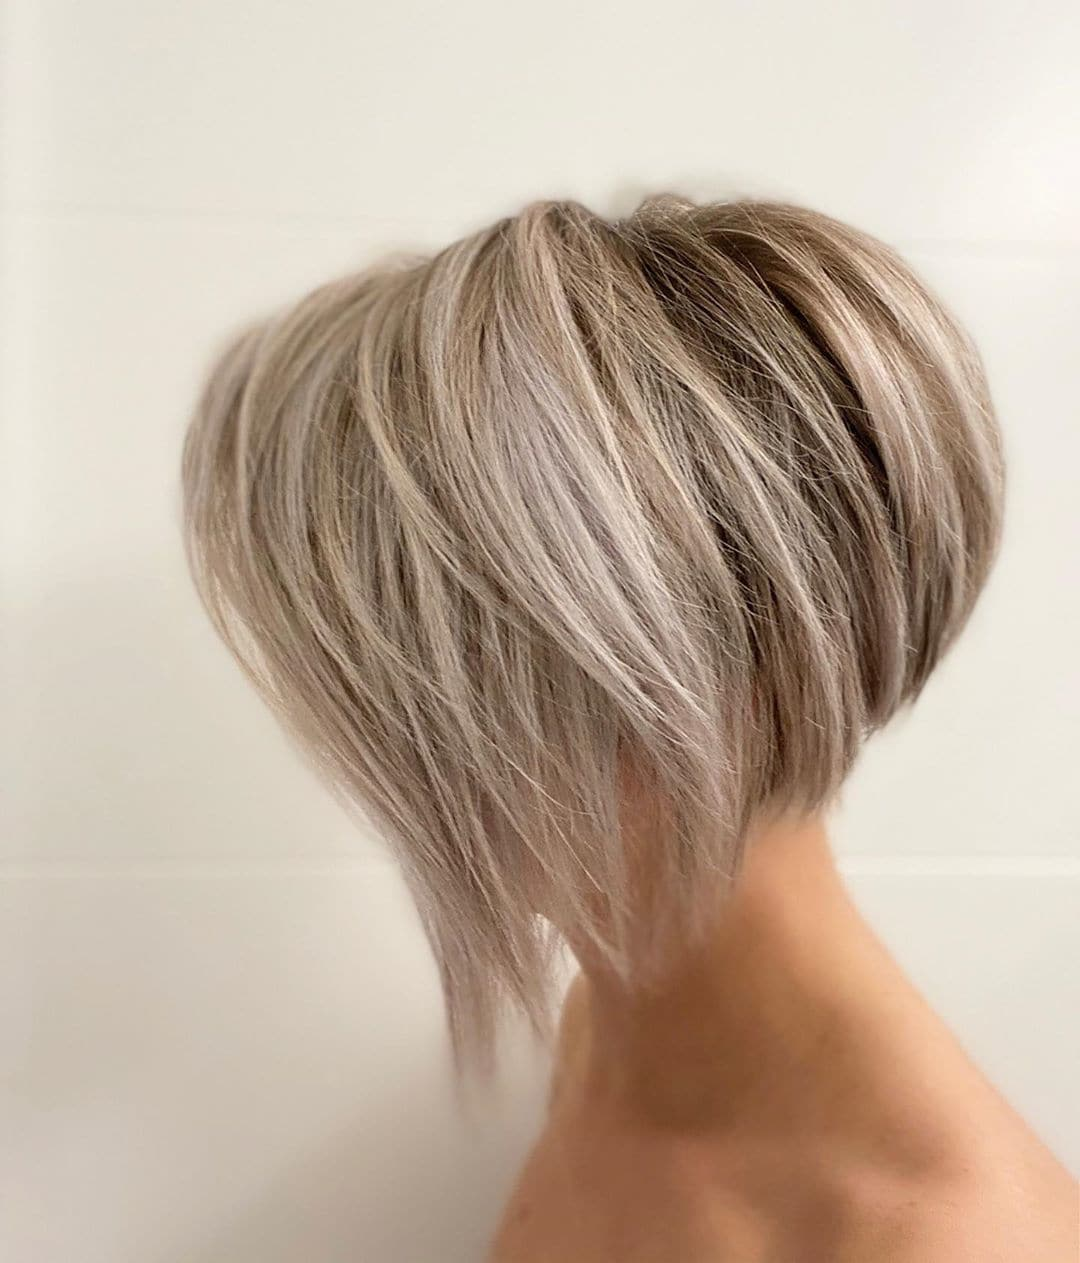 30 Hot Graduated Bob Haircuts for Women of All Ages (2020 Update)